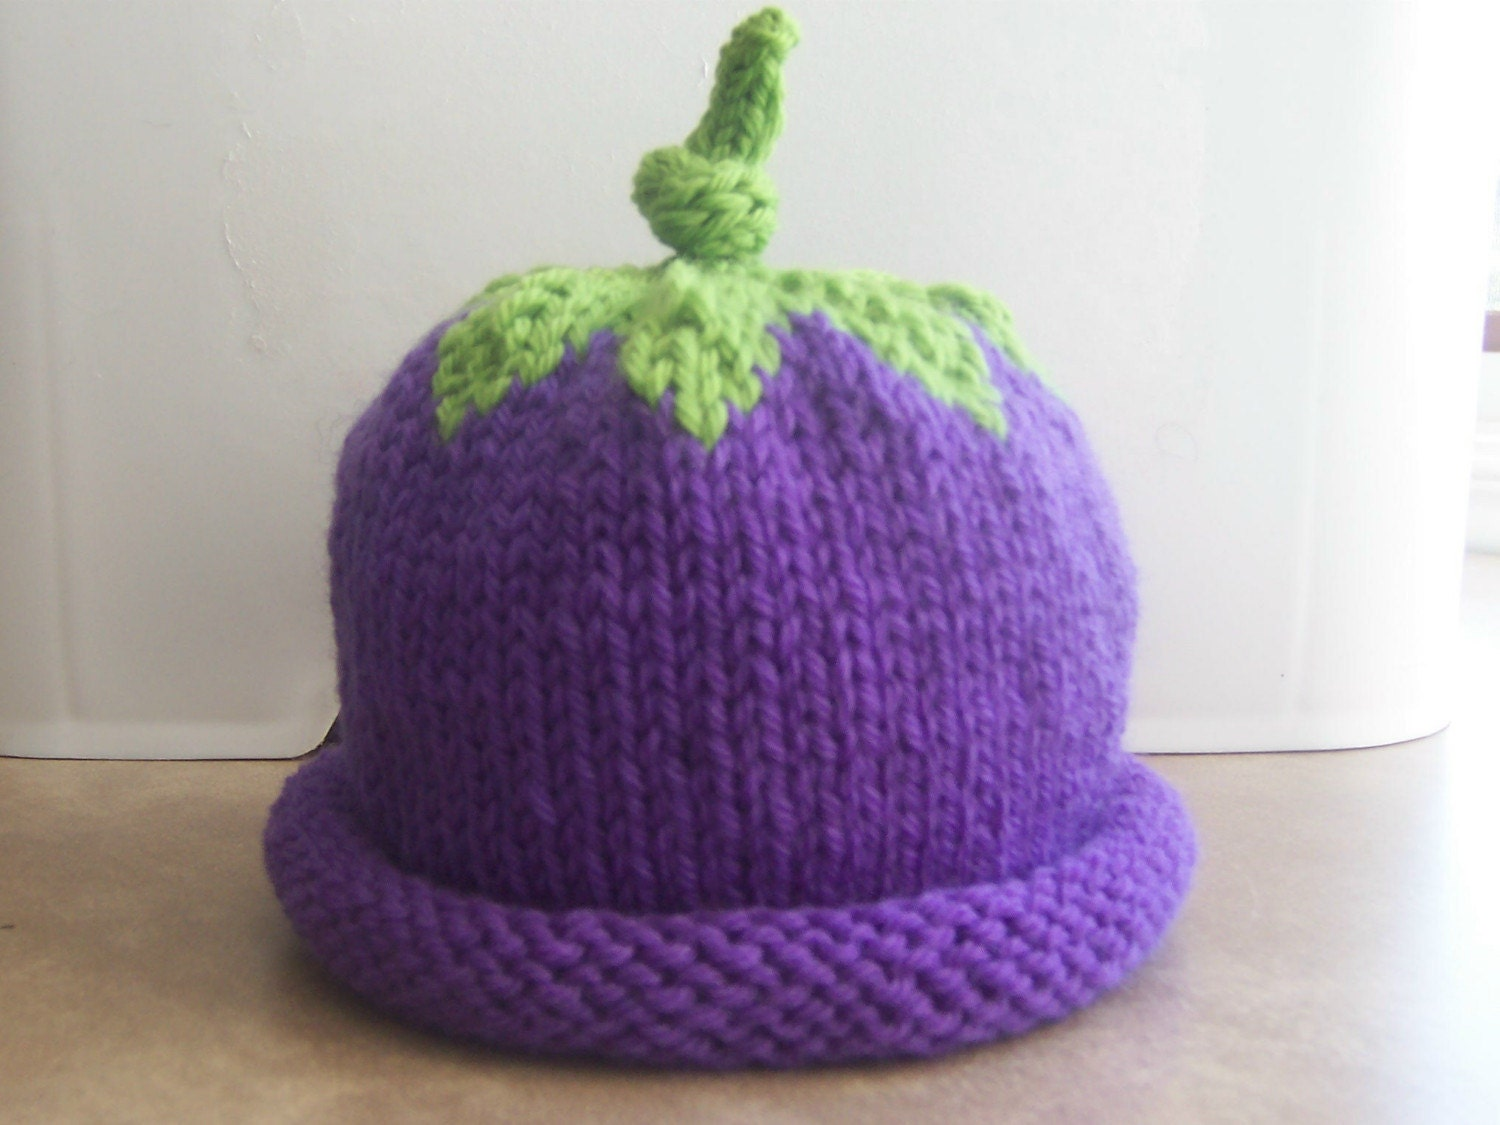 Grape Baby hat READY TO BE SHIPPED